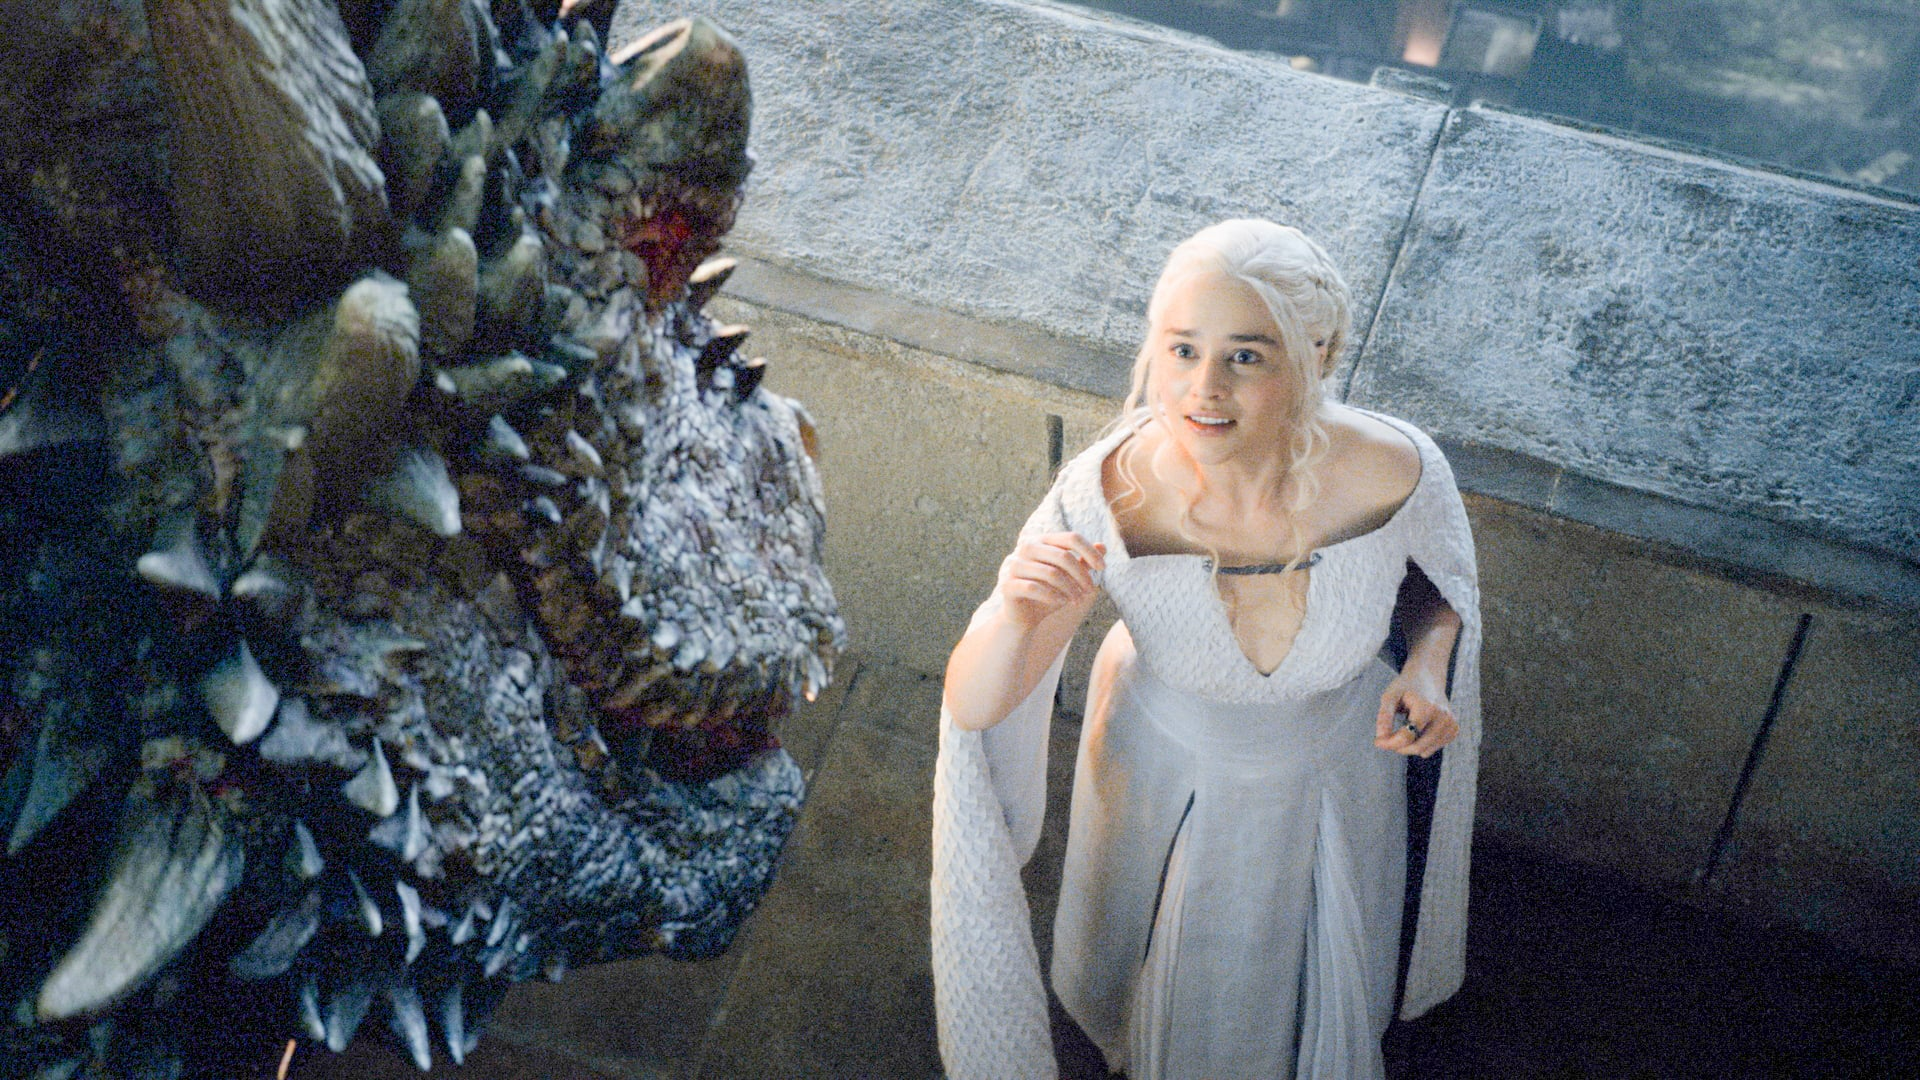 Bend the Knee! HBO's Game of Thrones Spin-off, House of the Dragon, Will Premiere in 2022